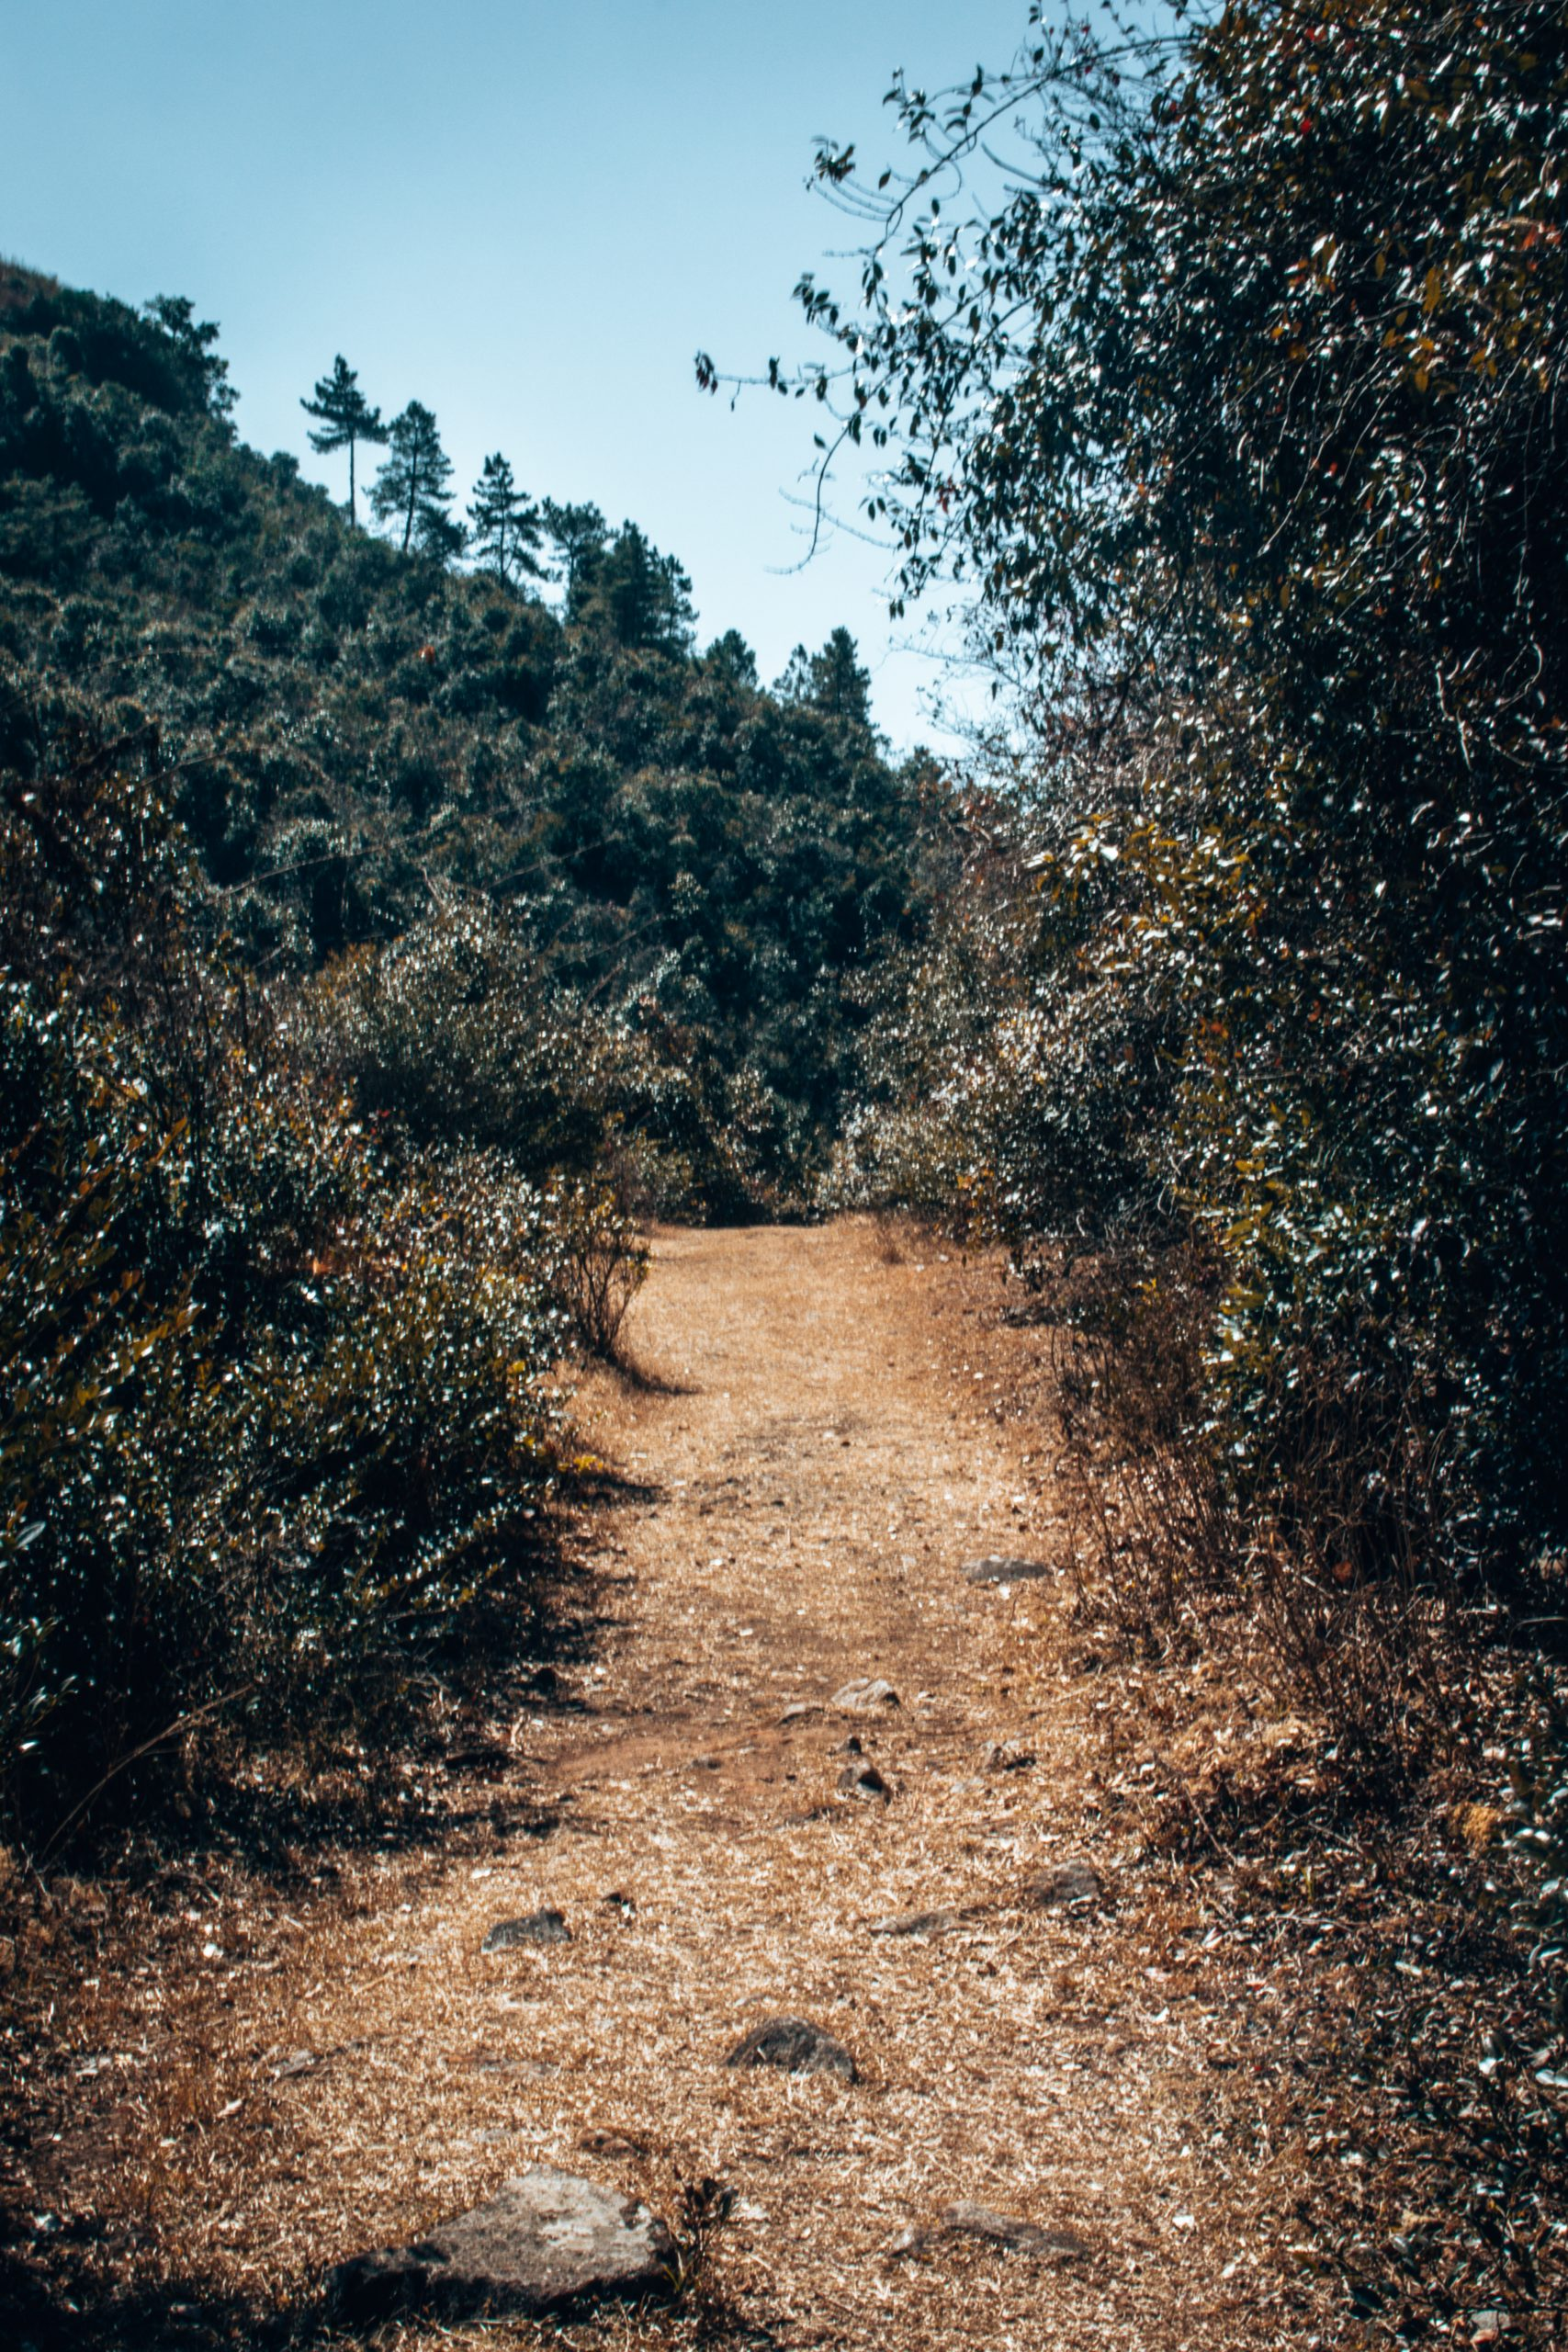 Narrow path in the forest